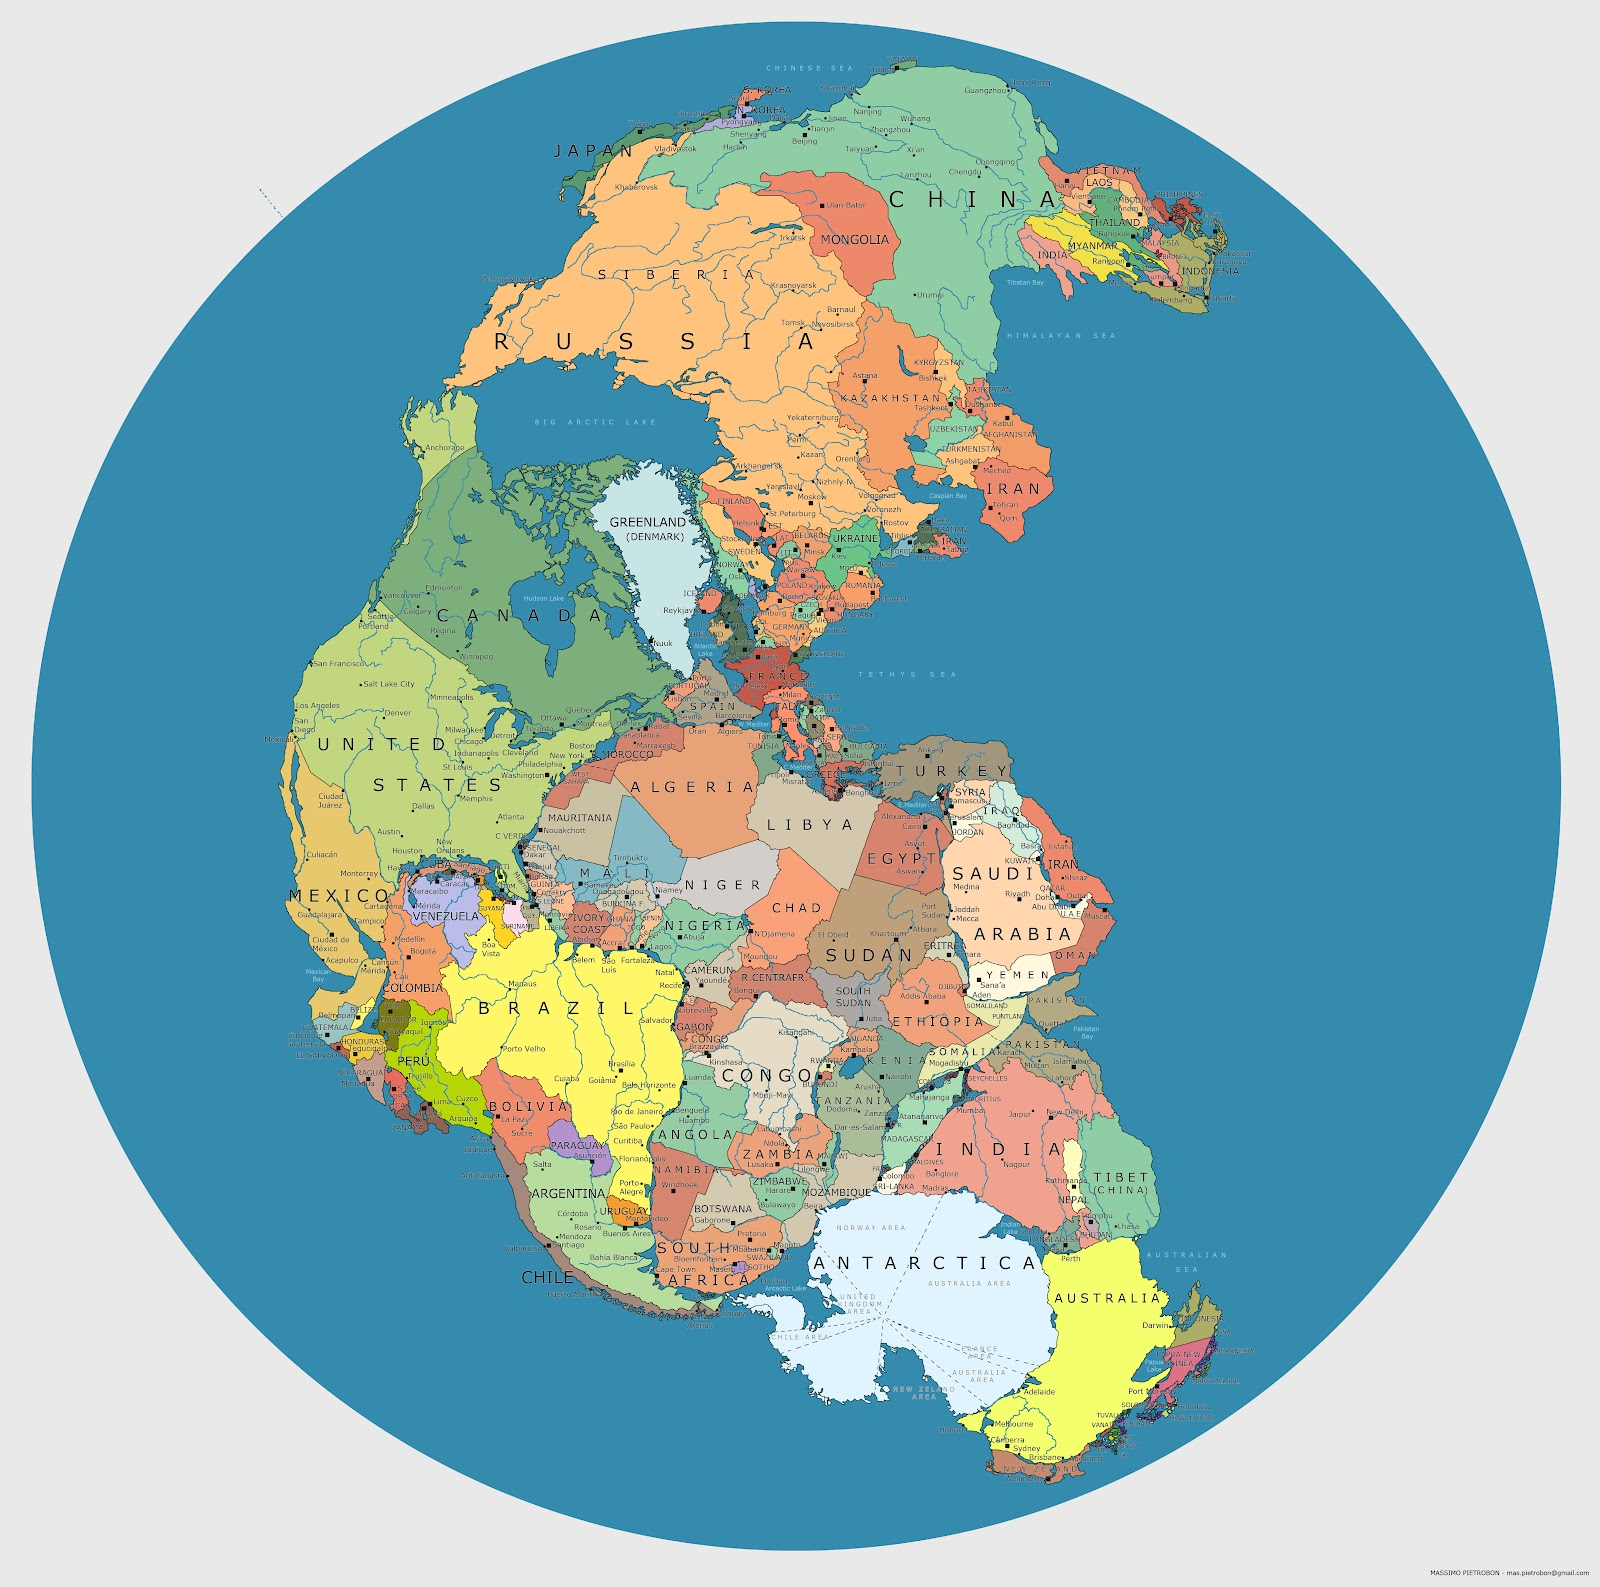 Maps That Will Help You Make Sense Of The World TwistedSifter - Map of the globe with countries